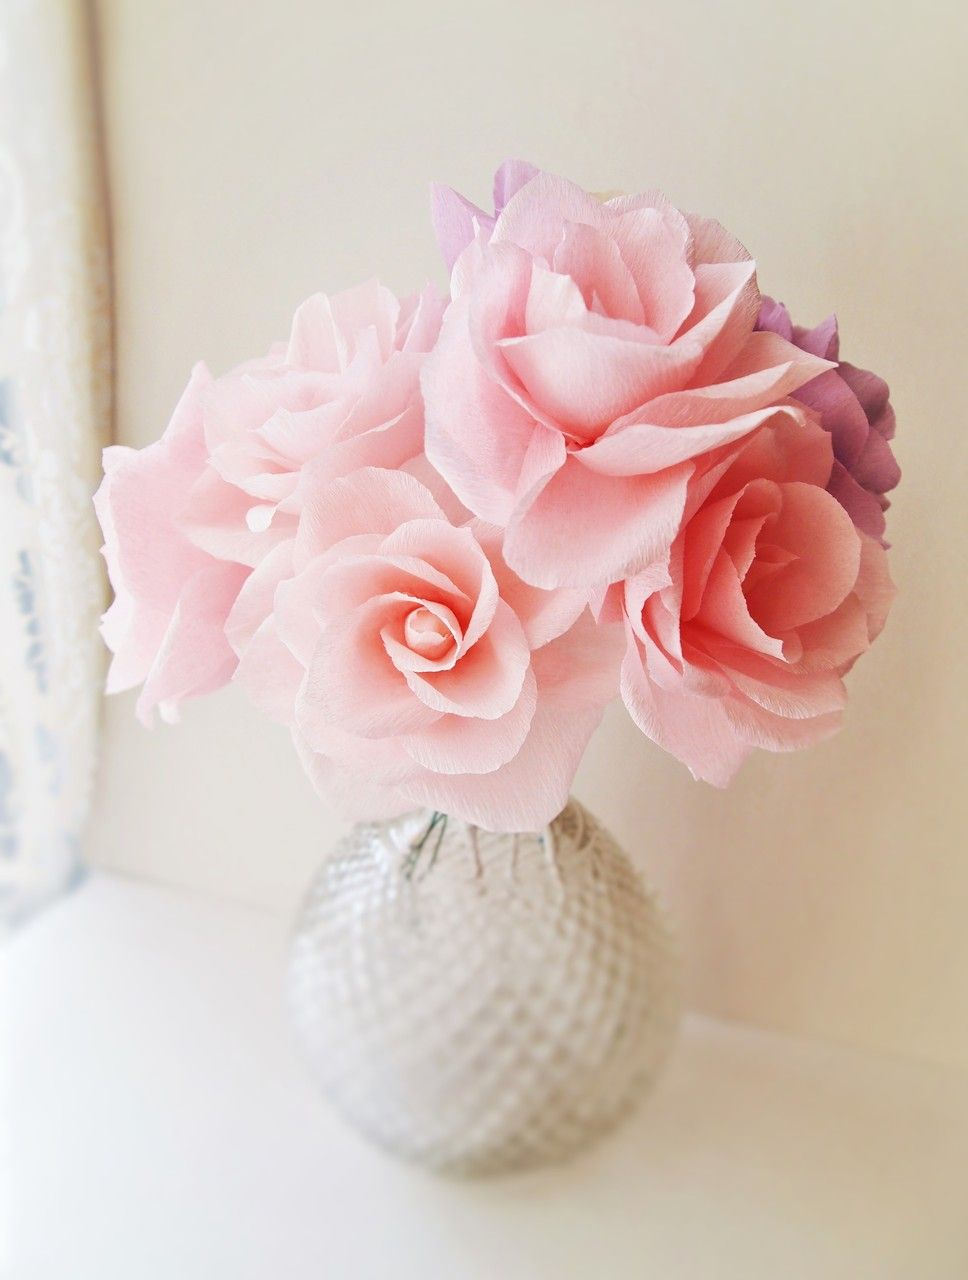 Romantic Crepe Paper Roses Handmade By Amelis Lovely Creations